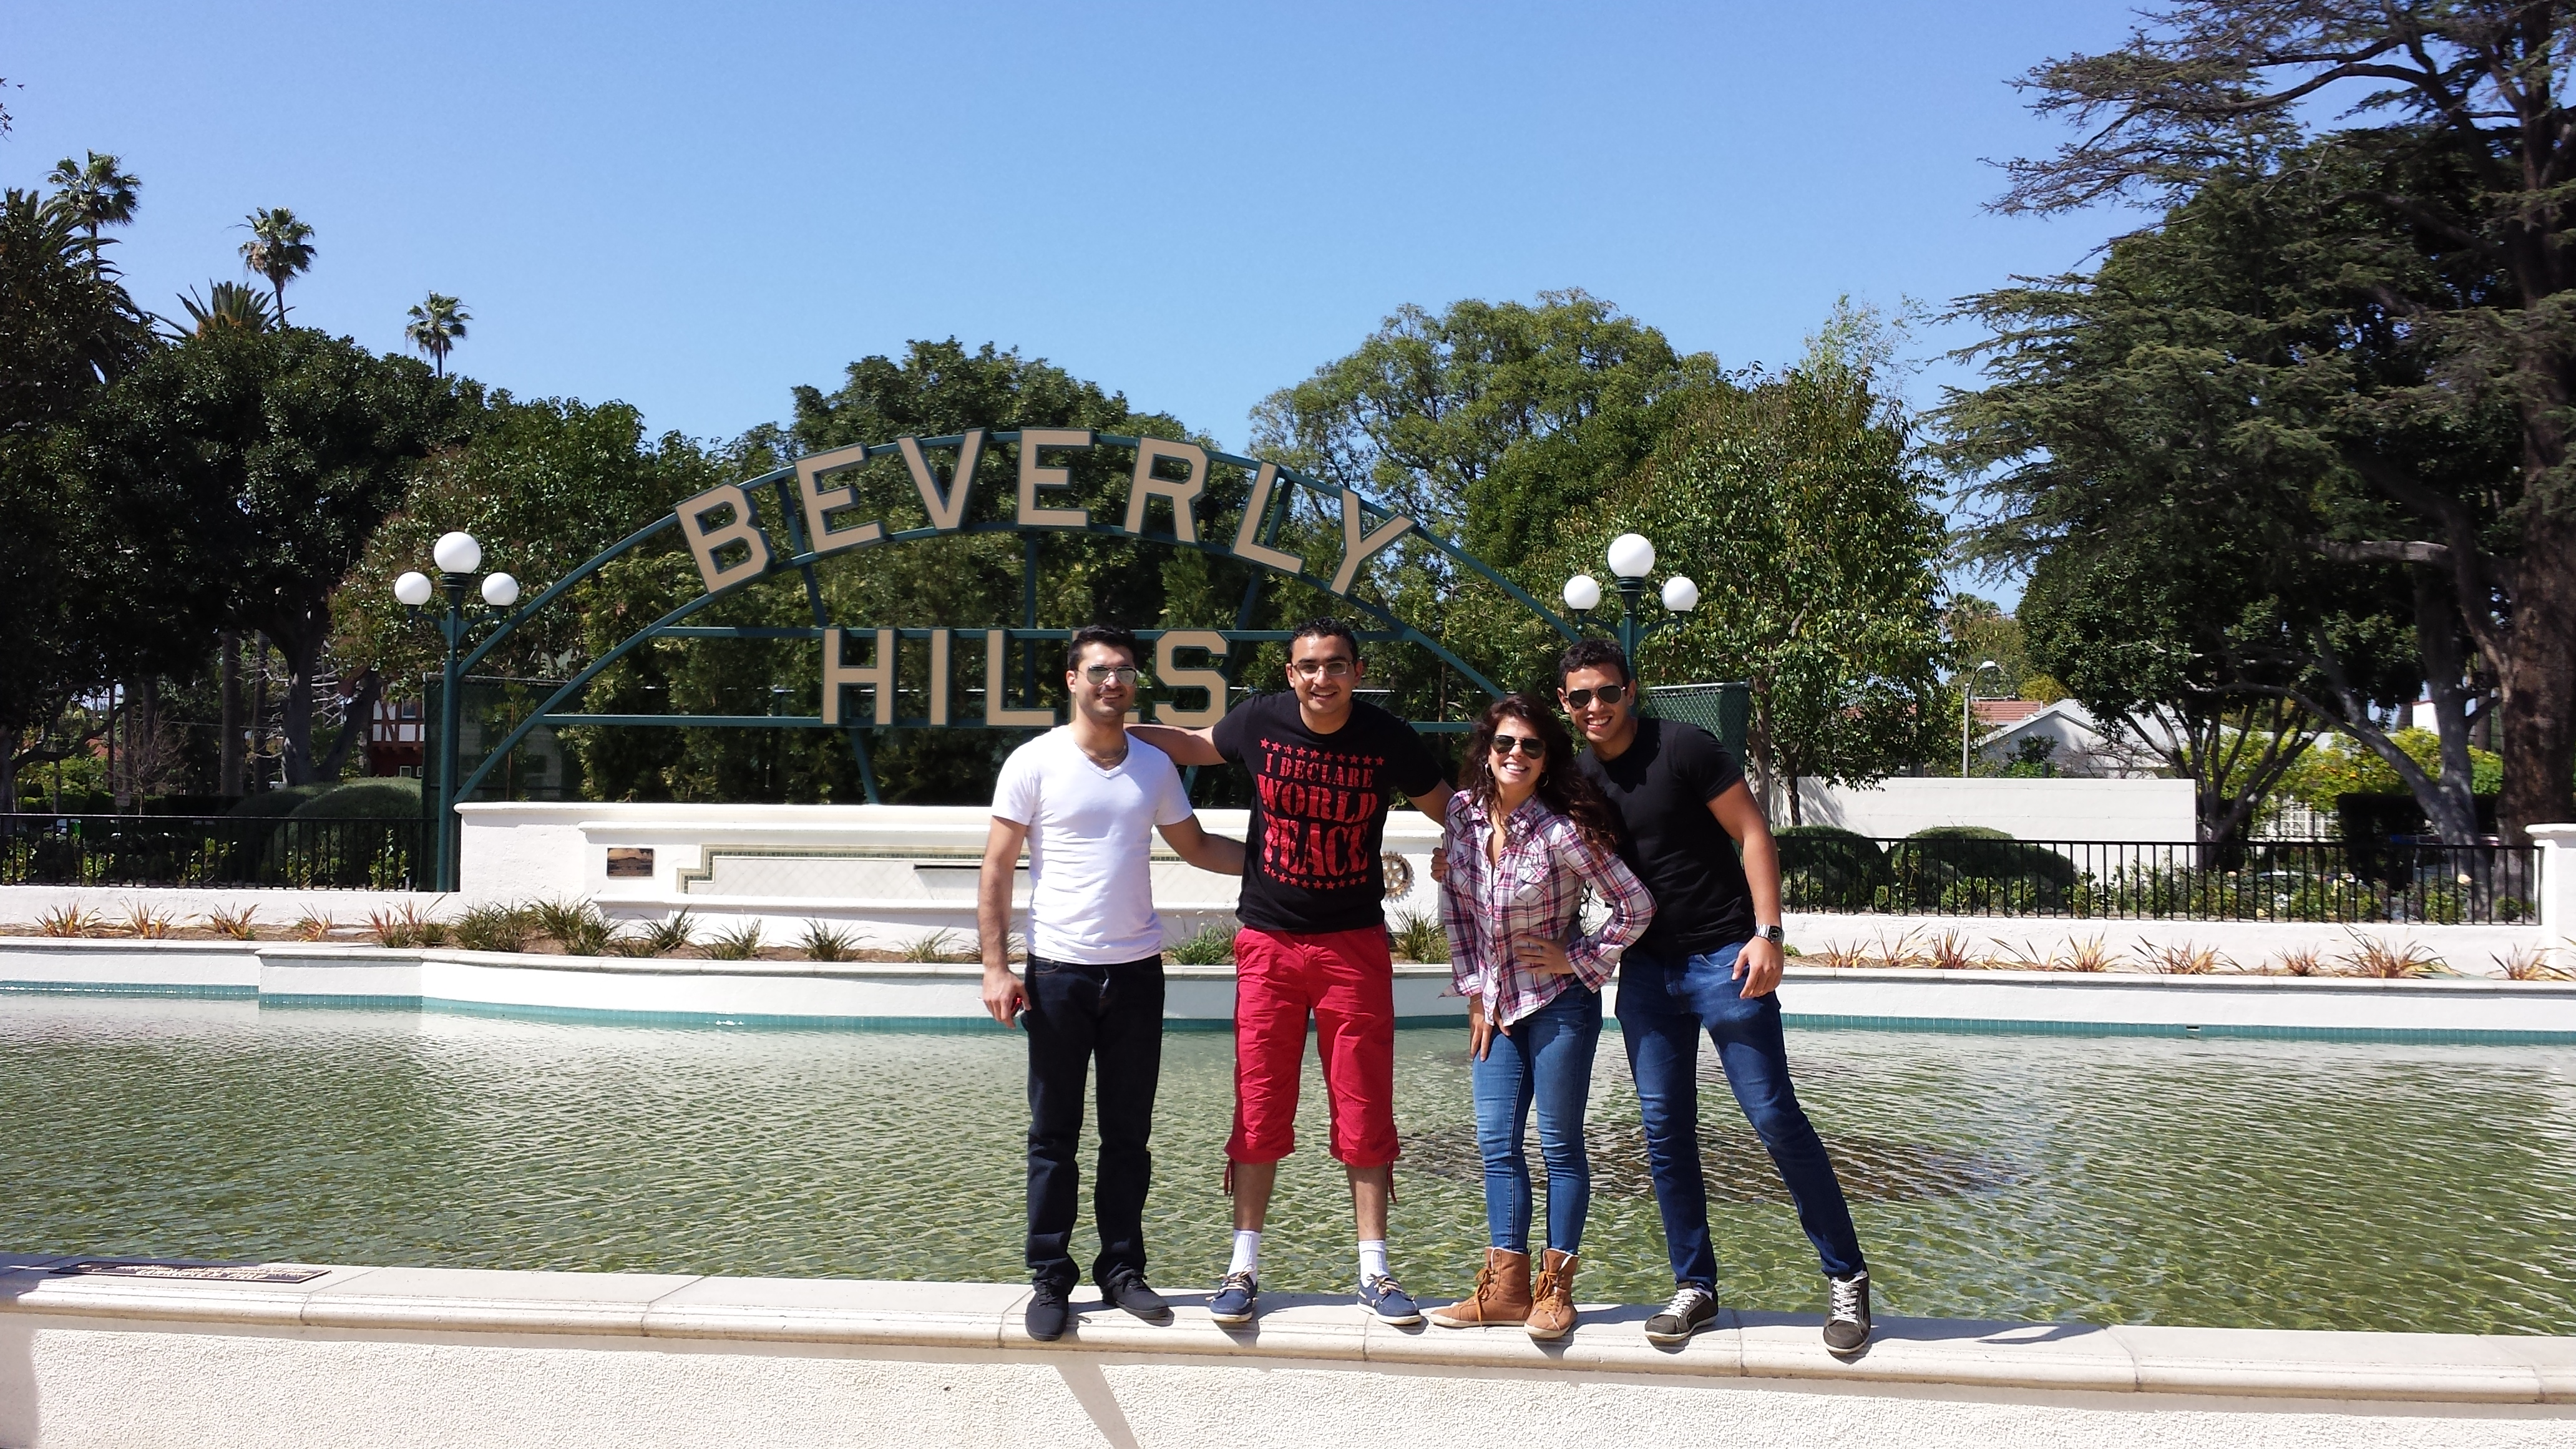 Tour group at Beverly Hills sign